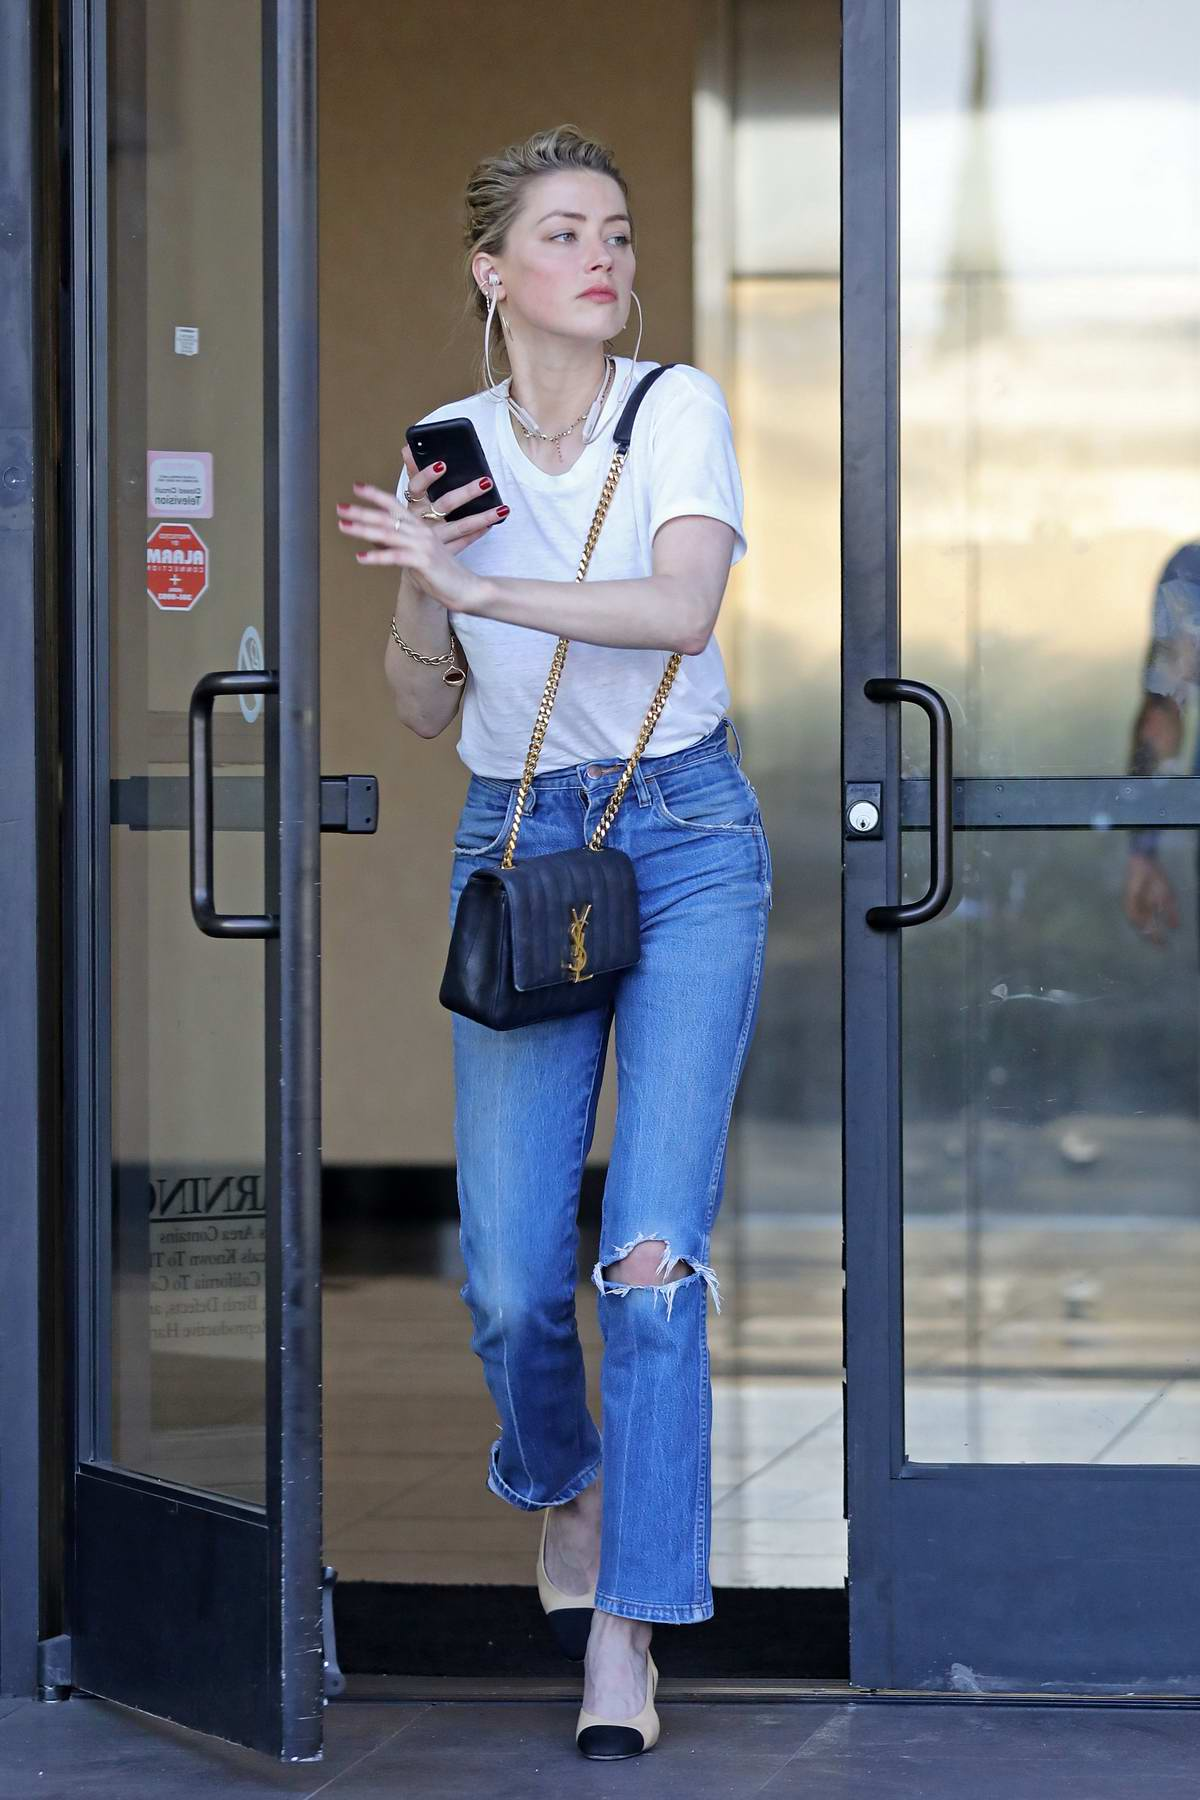 Amber Heard keeps it casual with a white tee and blue jeans while visiting a lawyer's office in Los Angeles